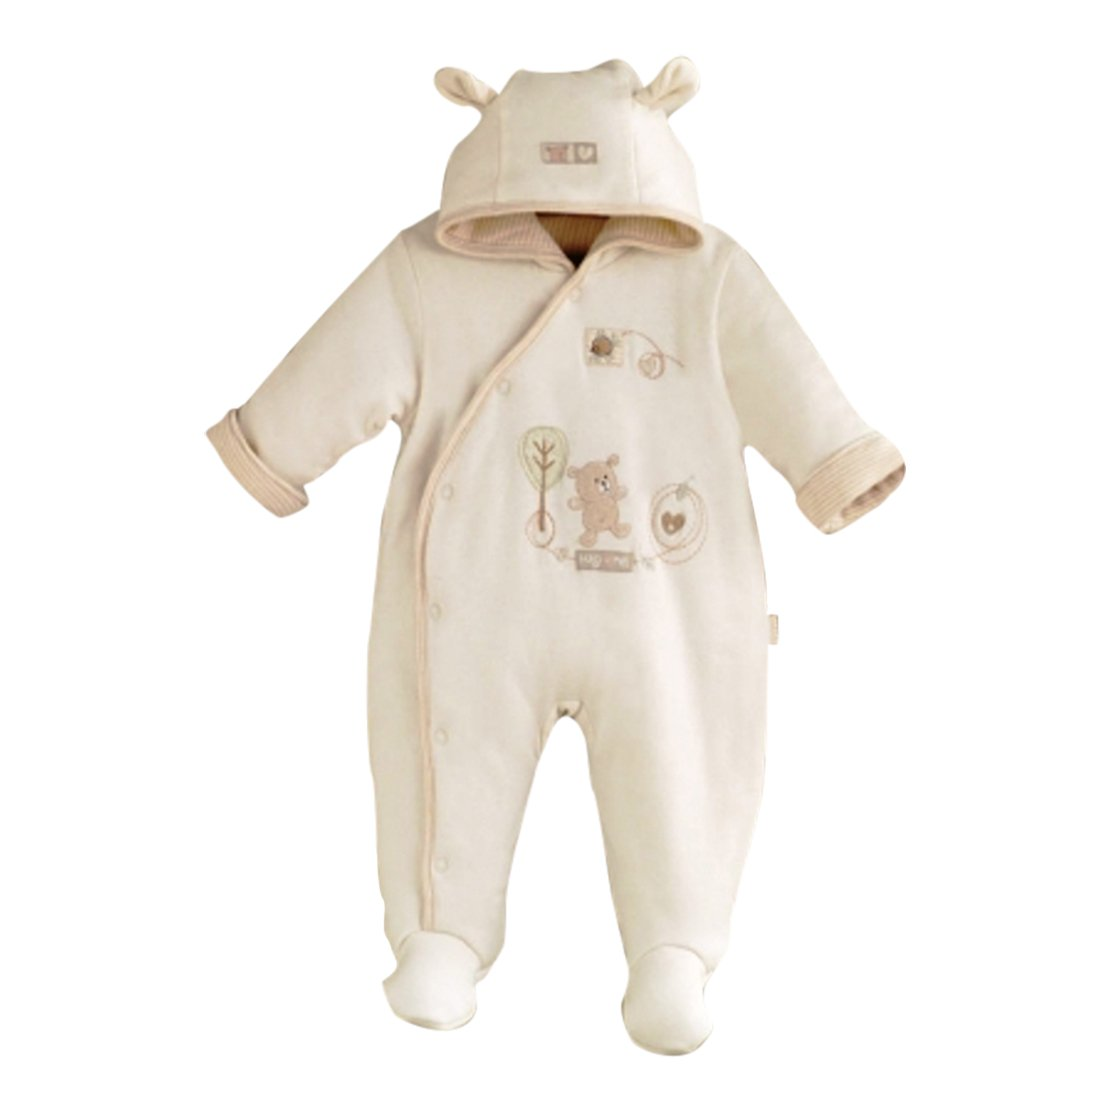 Natures Purest Hug me Snow Suit, embroidered detailing,teddy bear ears on the hood 3-6Months.